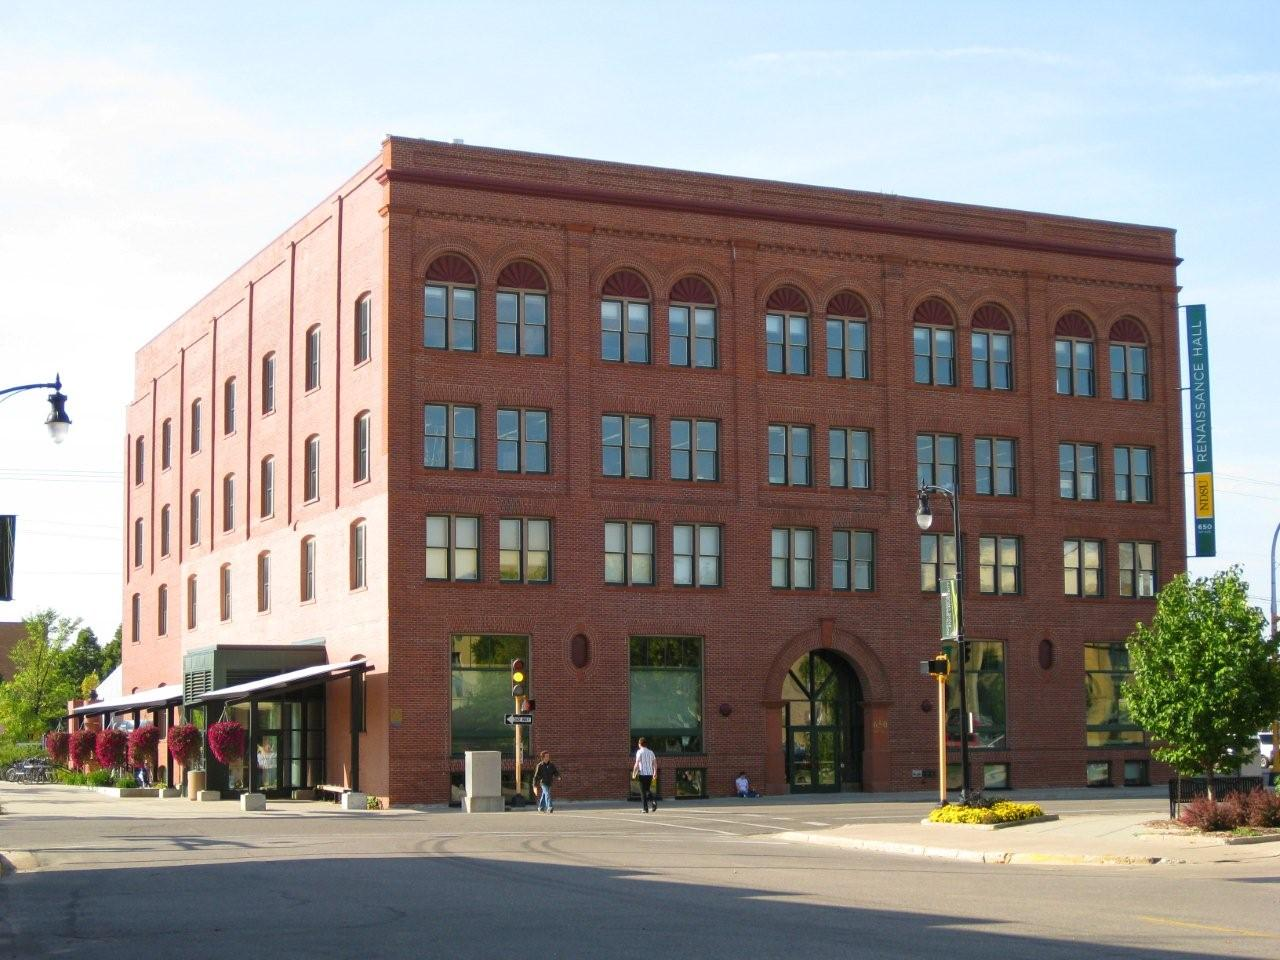 Renaissance Hall in downtown Moorhead is a former warehouse that's been transformed into a state-of-the-art facility housing North Dakota State's visual arts department and other university offices. (Source: Kilbourne Group)